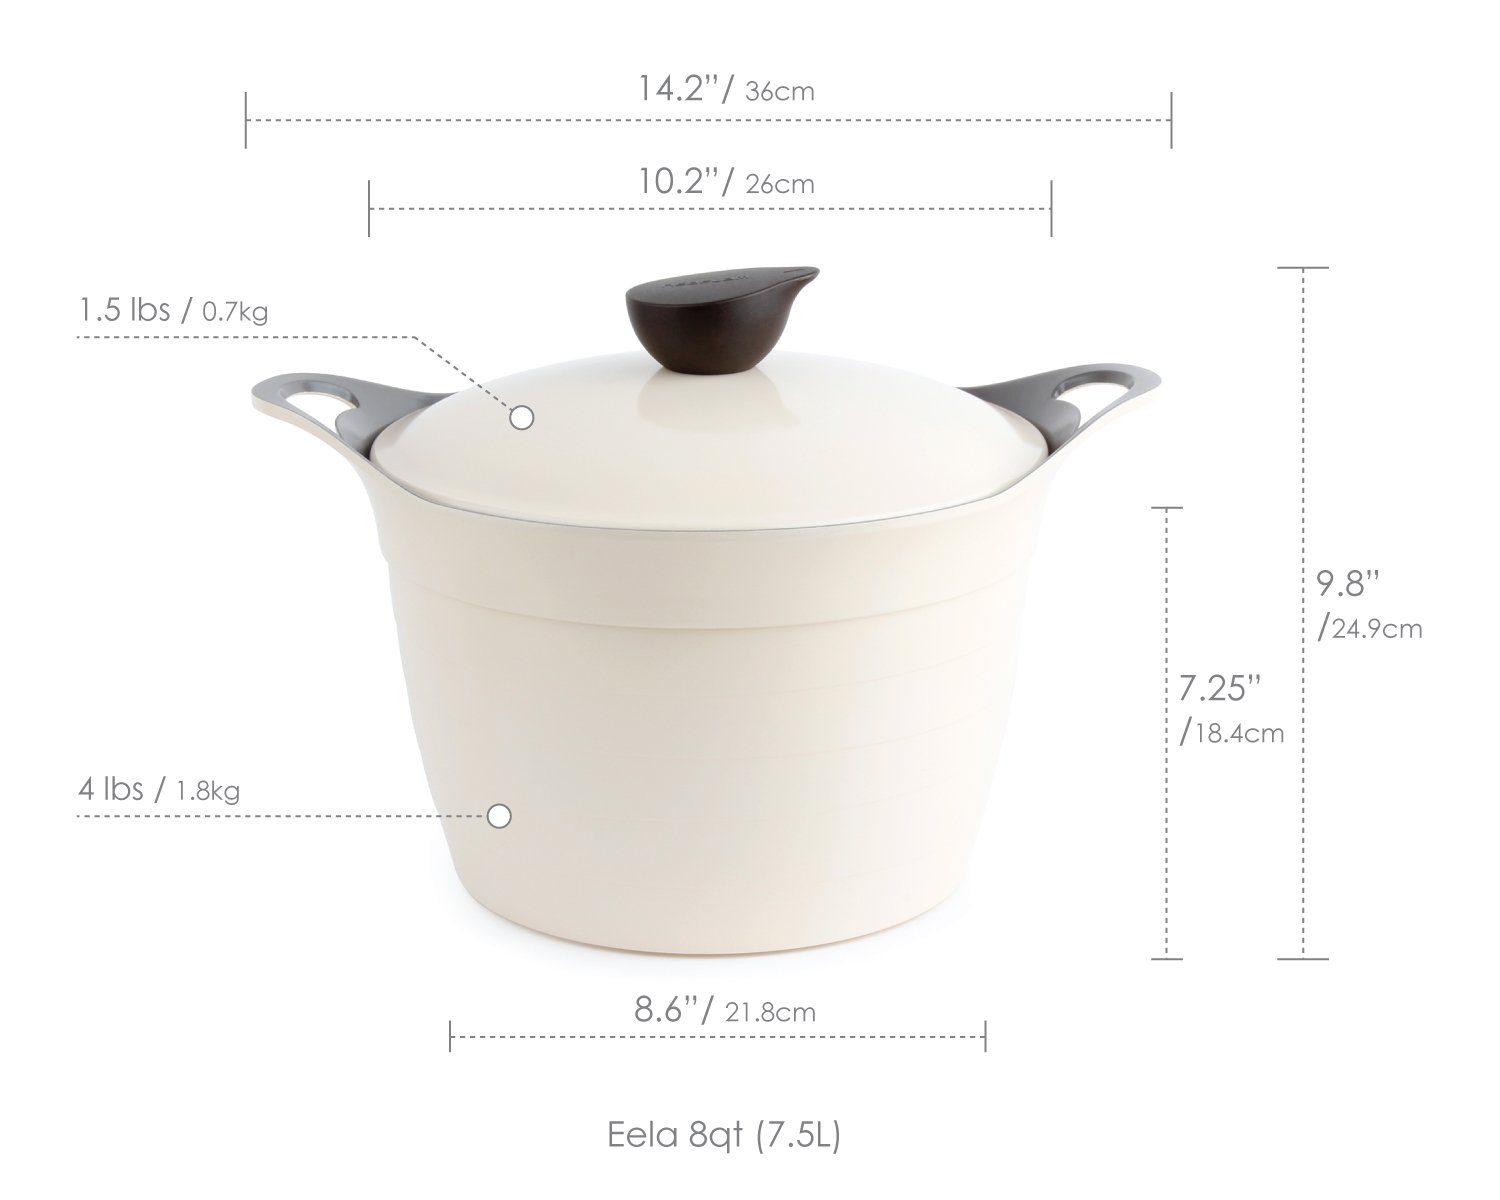 Neoflam Eela 8 QT Ceramic Nonstick Stockpot with Steam Releasing Lid in Ivory by Neoflam (Image #2)